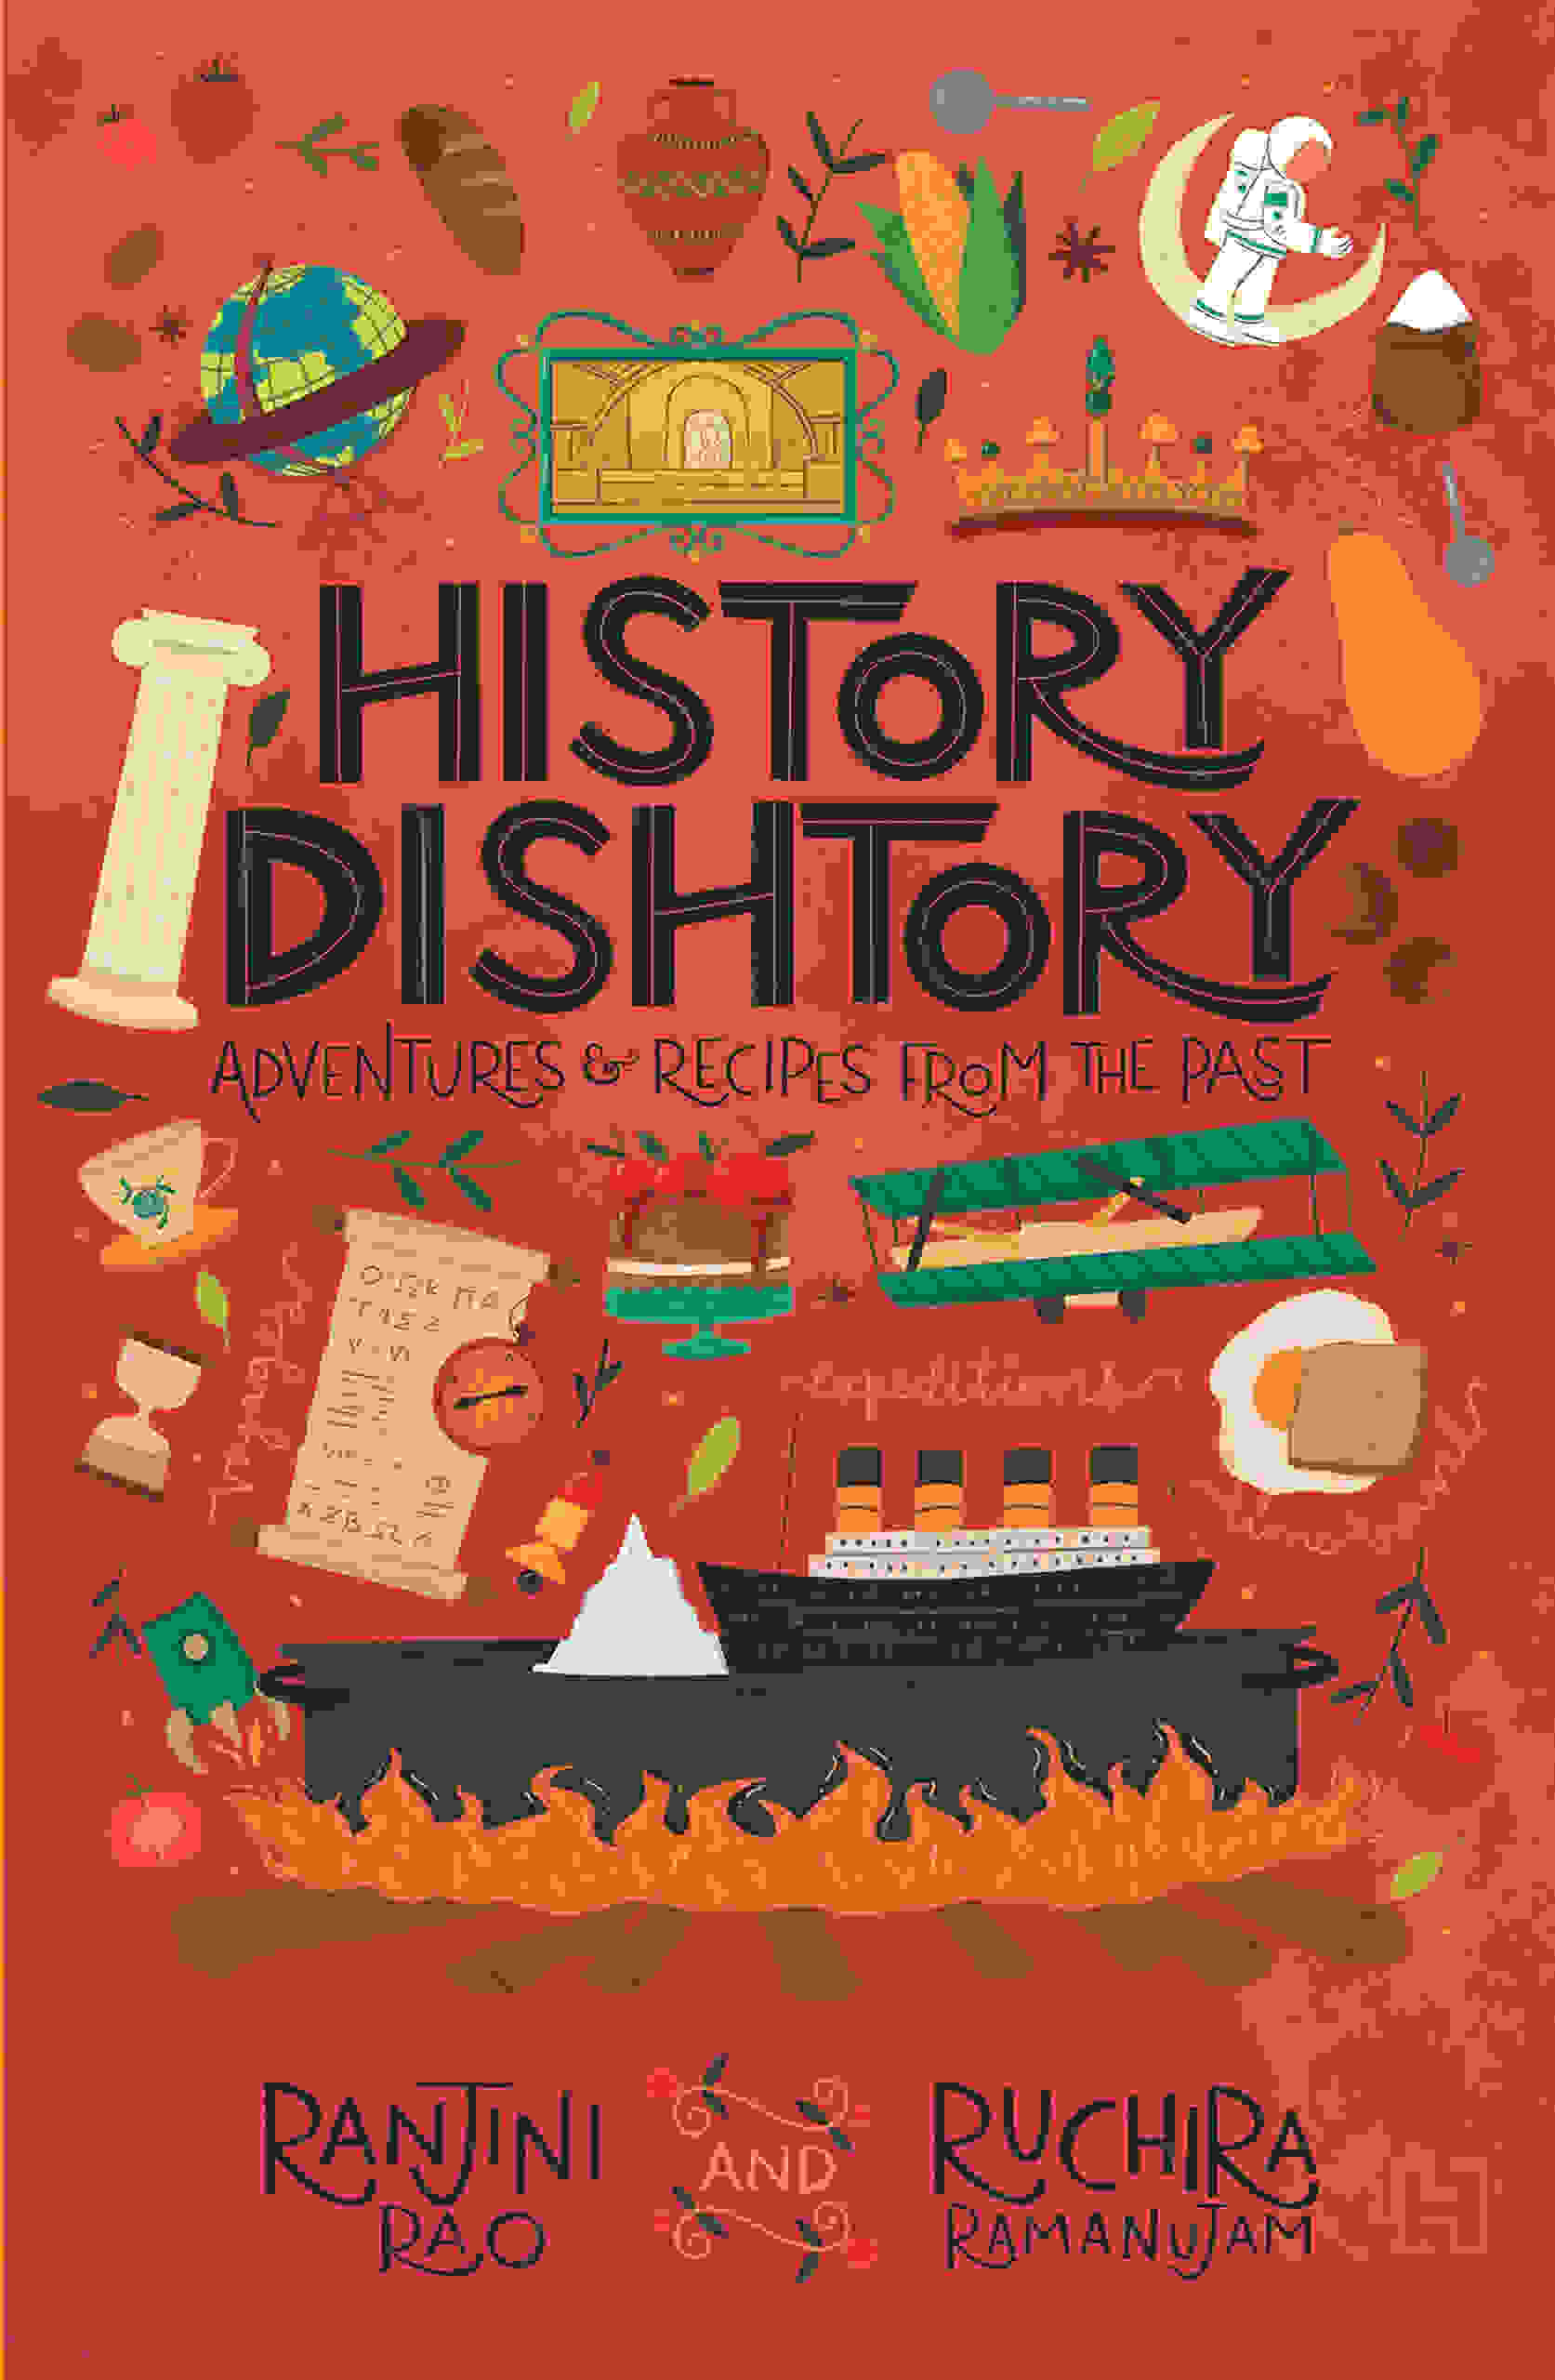 History Dishtory: Adventures & Recipes from the Past by Ranjini Rao and Ruchira Ramanujam, Hachette, Rs 450